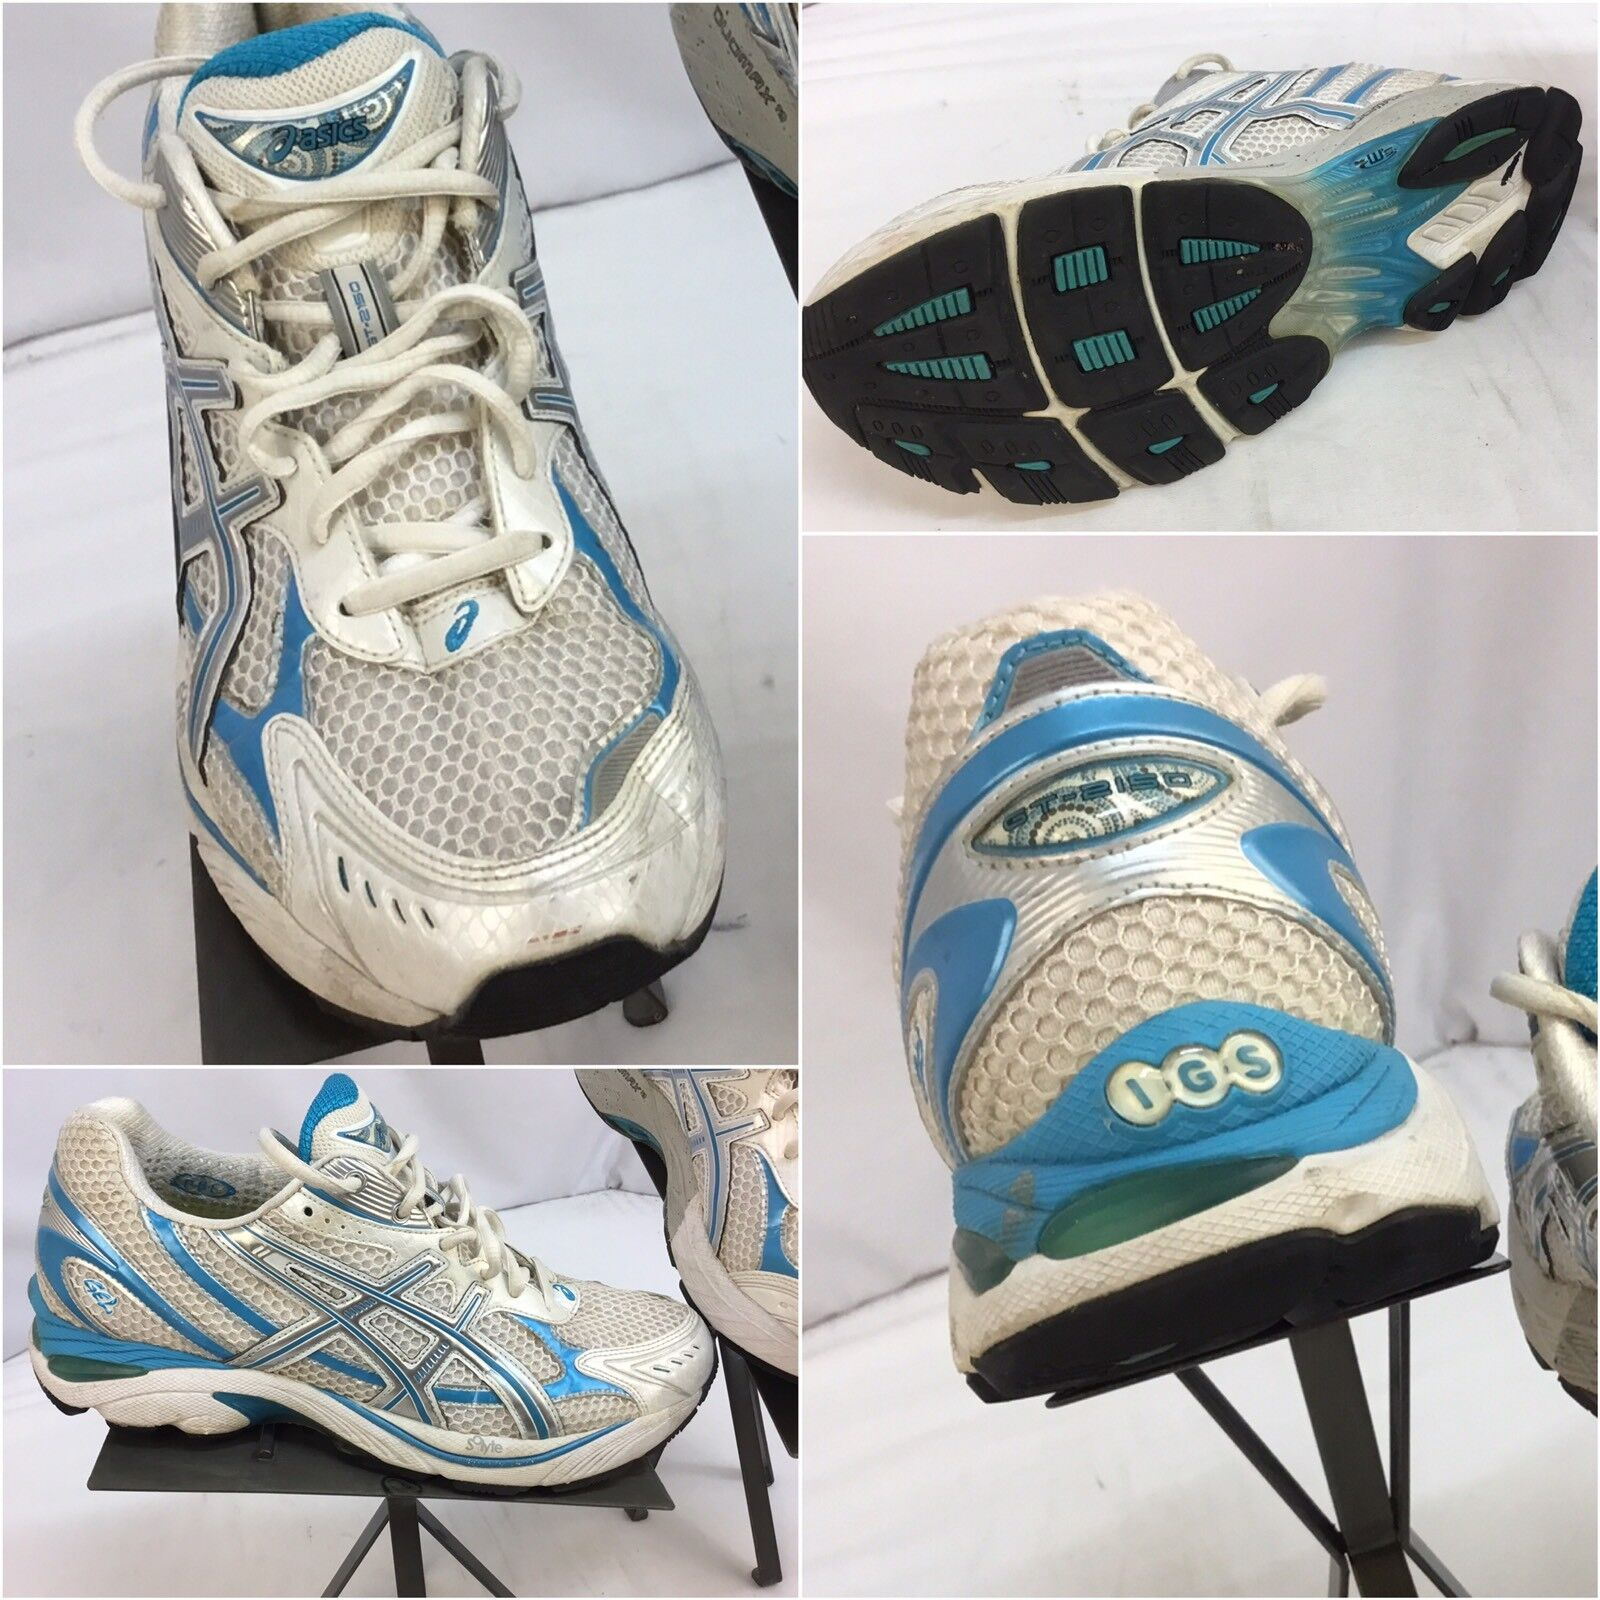 Asics Gel GT 2150 Sz 10 Women White bluee Running shoes EUC YGI G7